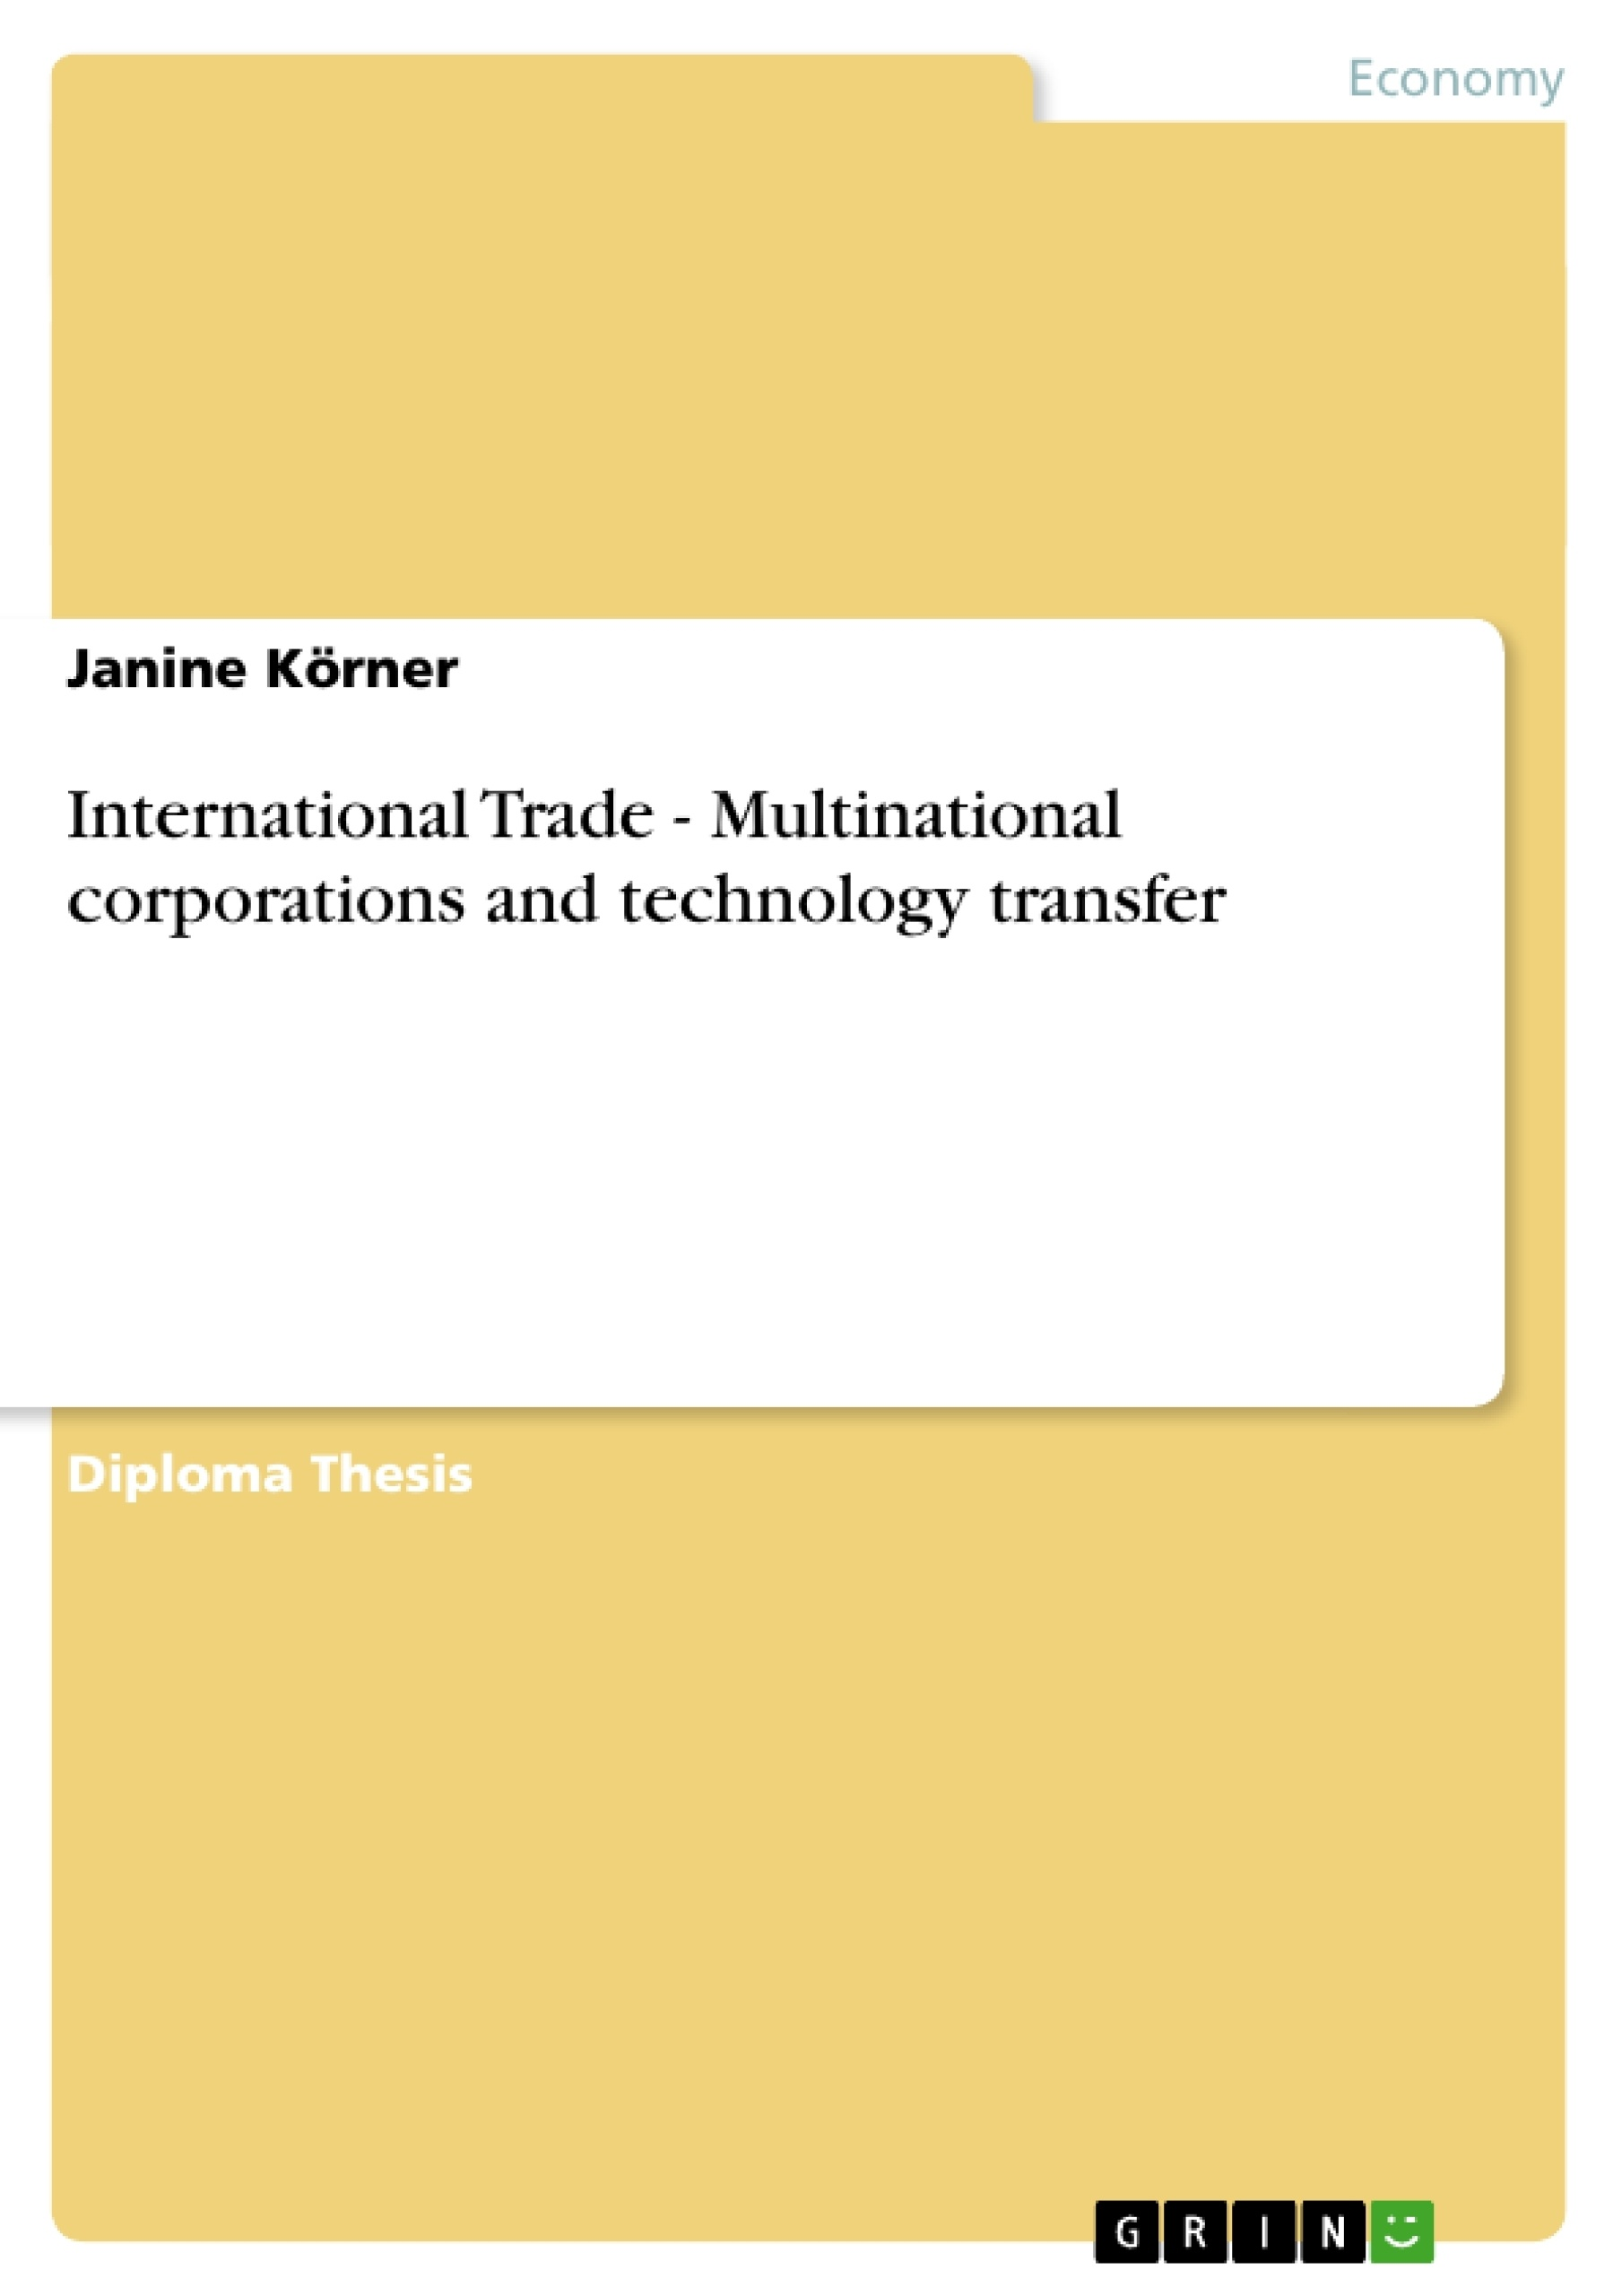 Title: International Trade - Multinational corporations and technology transfer